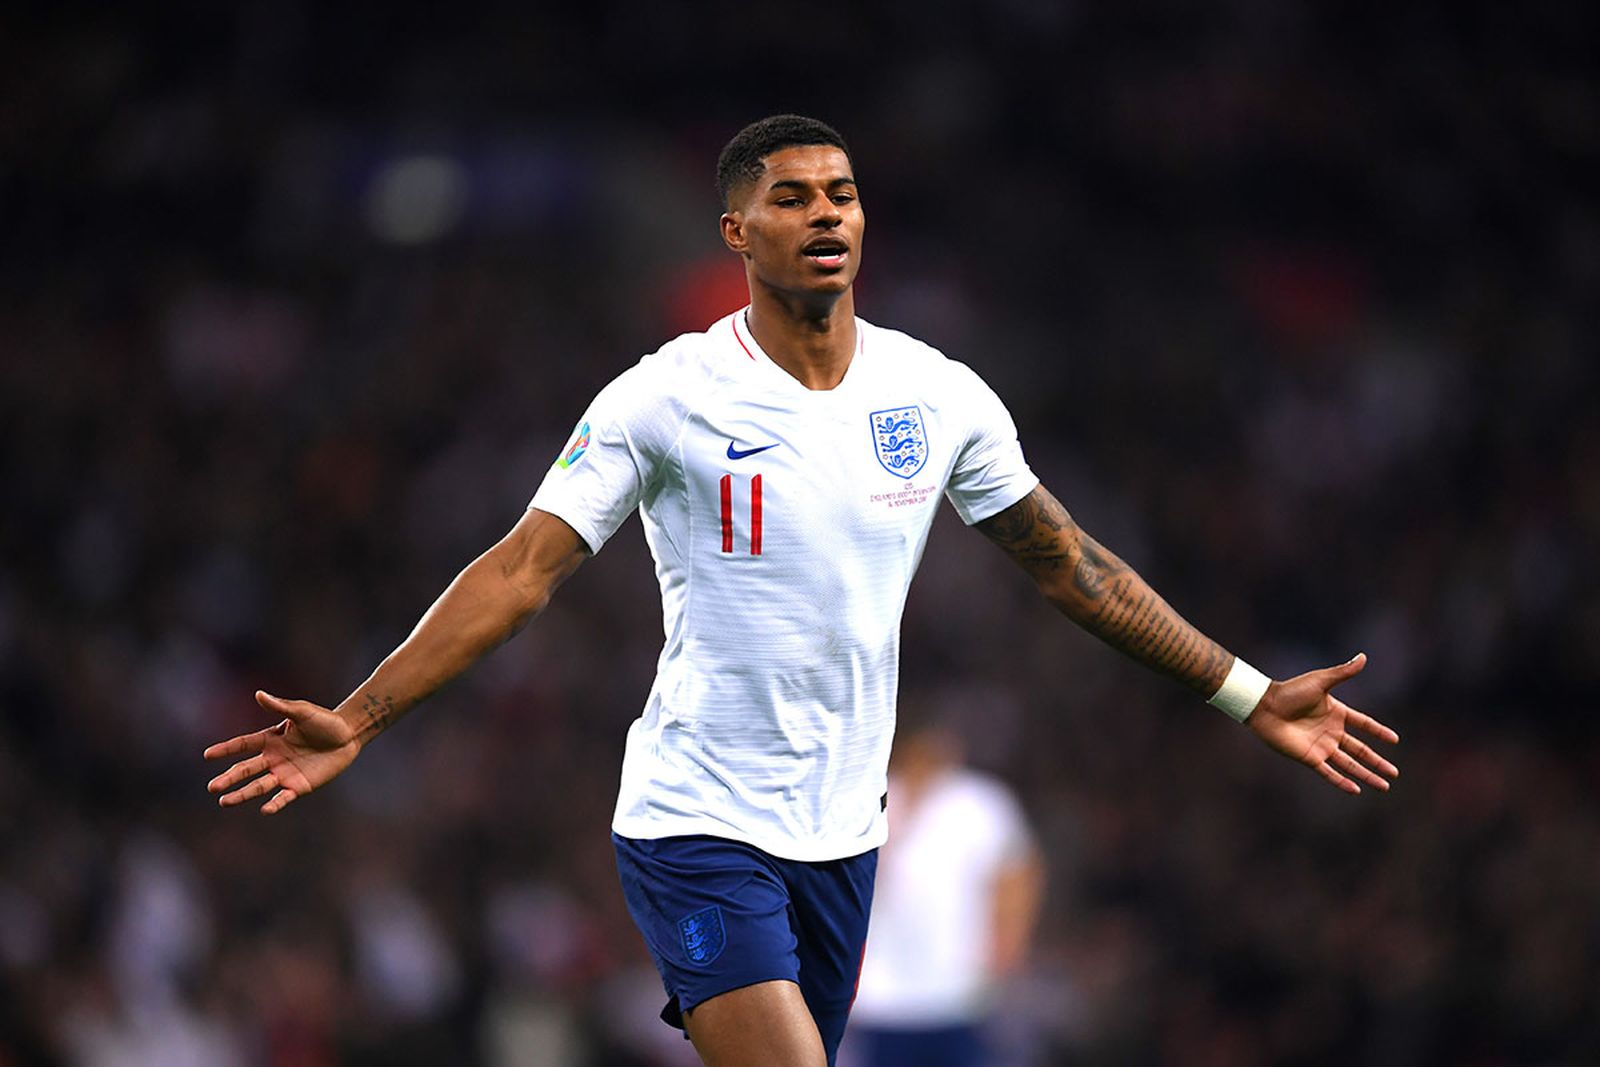 Marcus Rashford of England celebrates after scoring his sides fourth goal during the UEFA Euro 2020 qualifier between England and Montenegro at Wembley Stadium